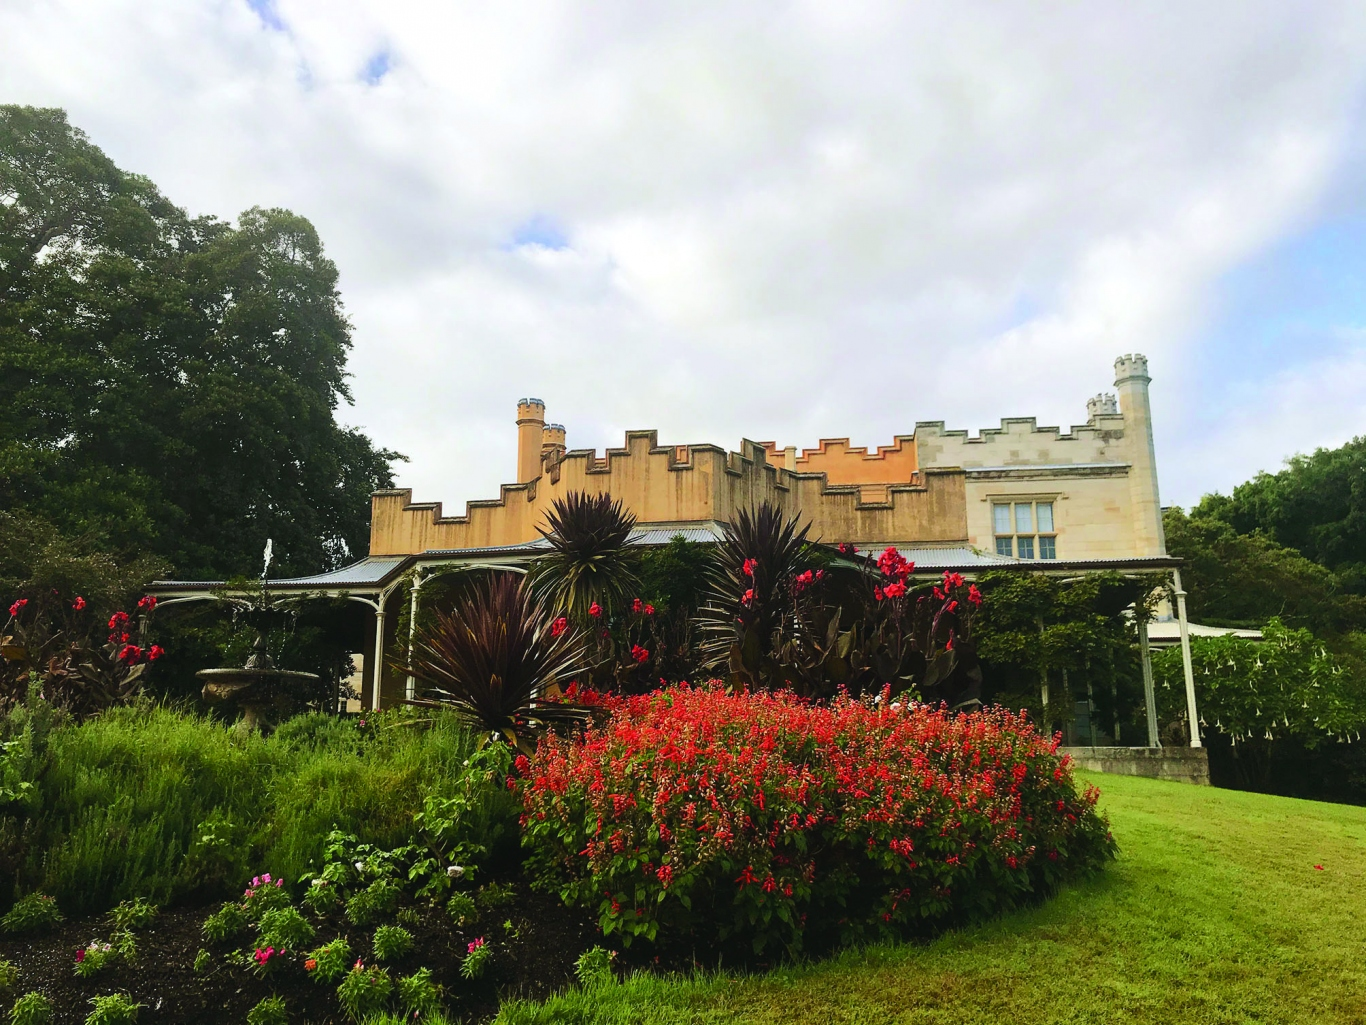 Crenellated facade of house with turrets above and colourful garden bed in foreground.